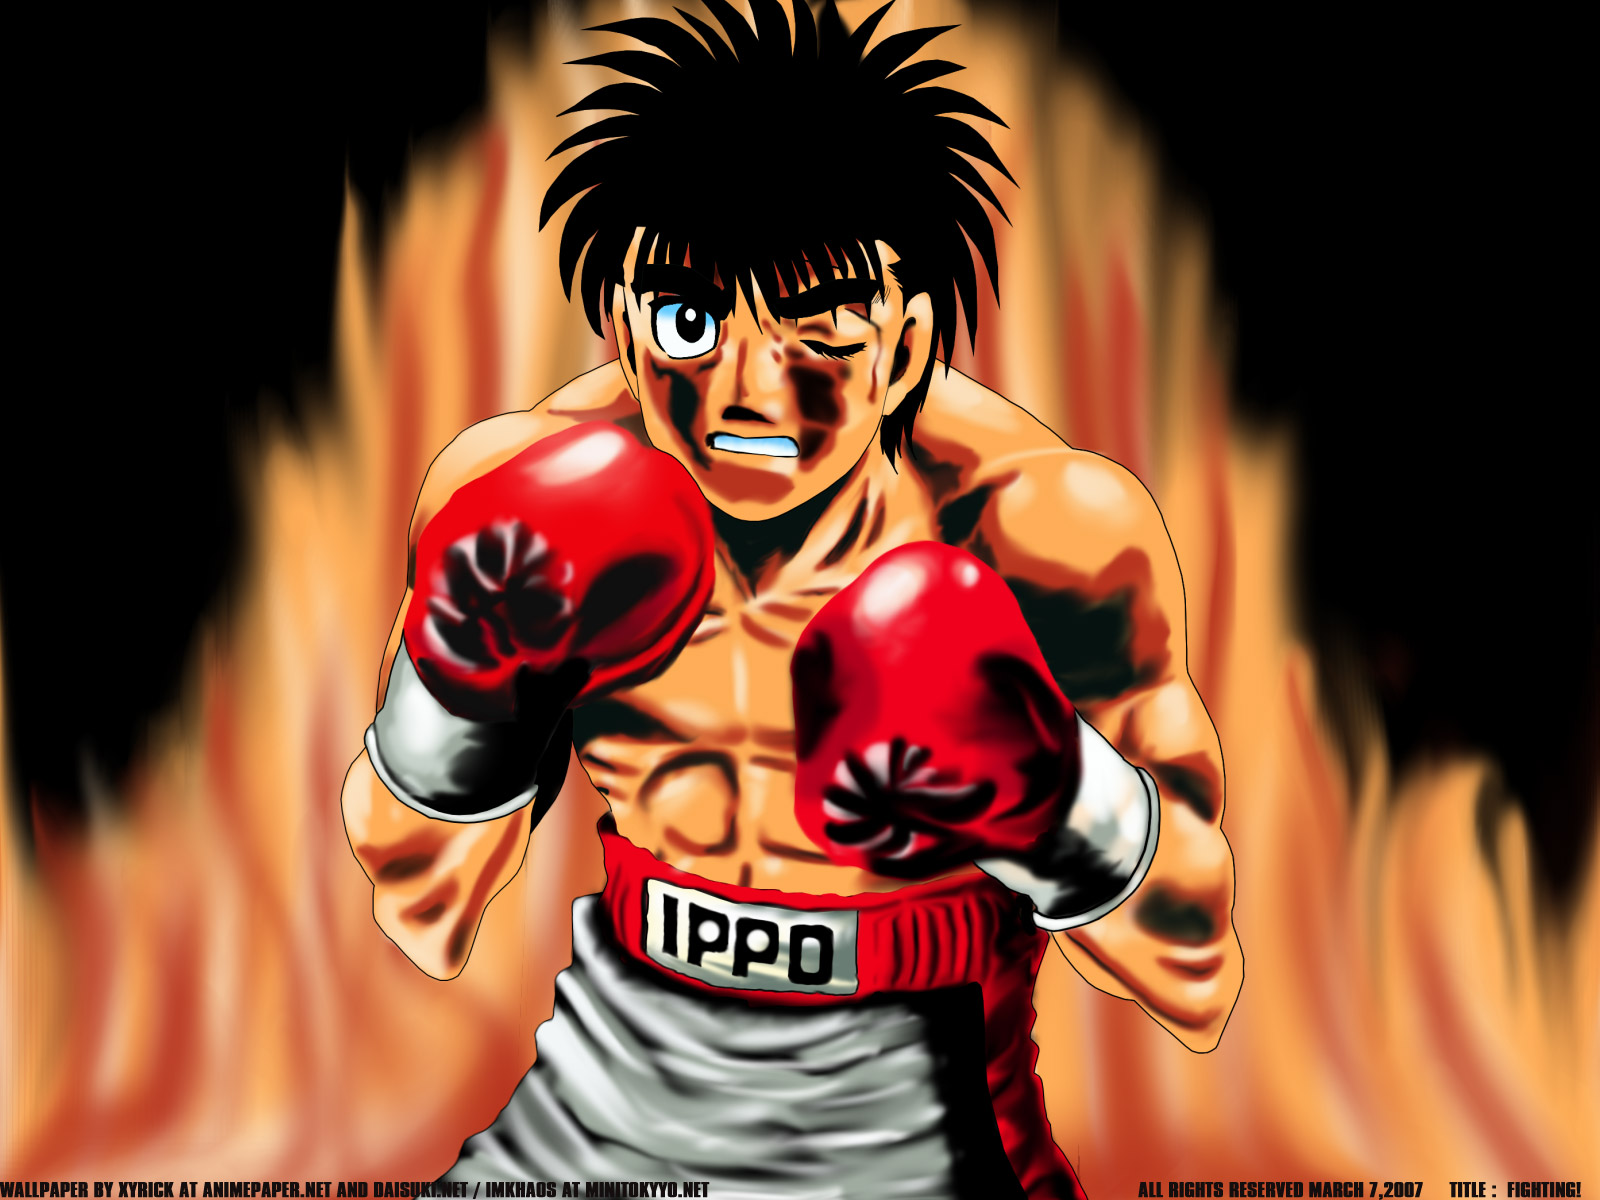 Free Download Hajime No Ippo Wallpapers 1600x1200 Px Iol3f7i 4usky